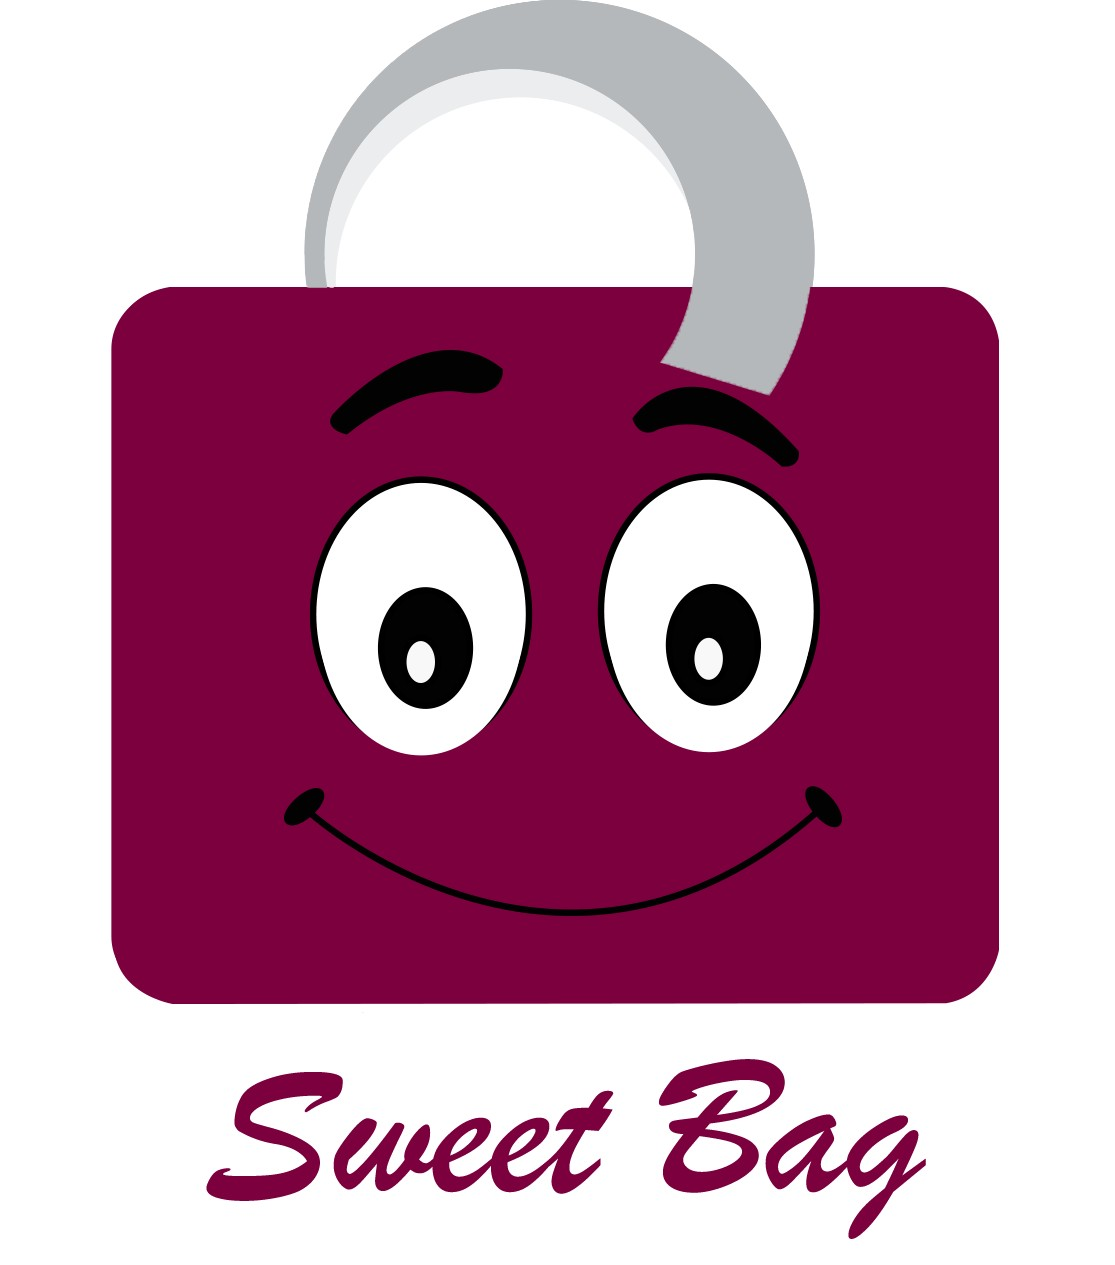 Sweetbag